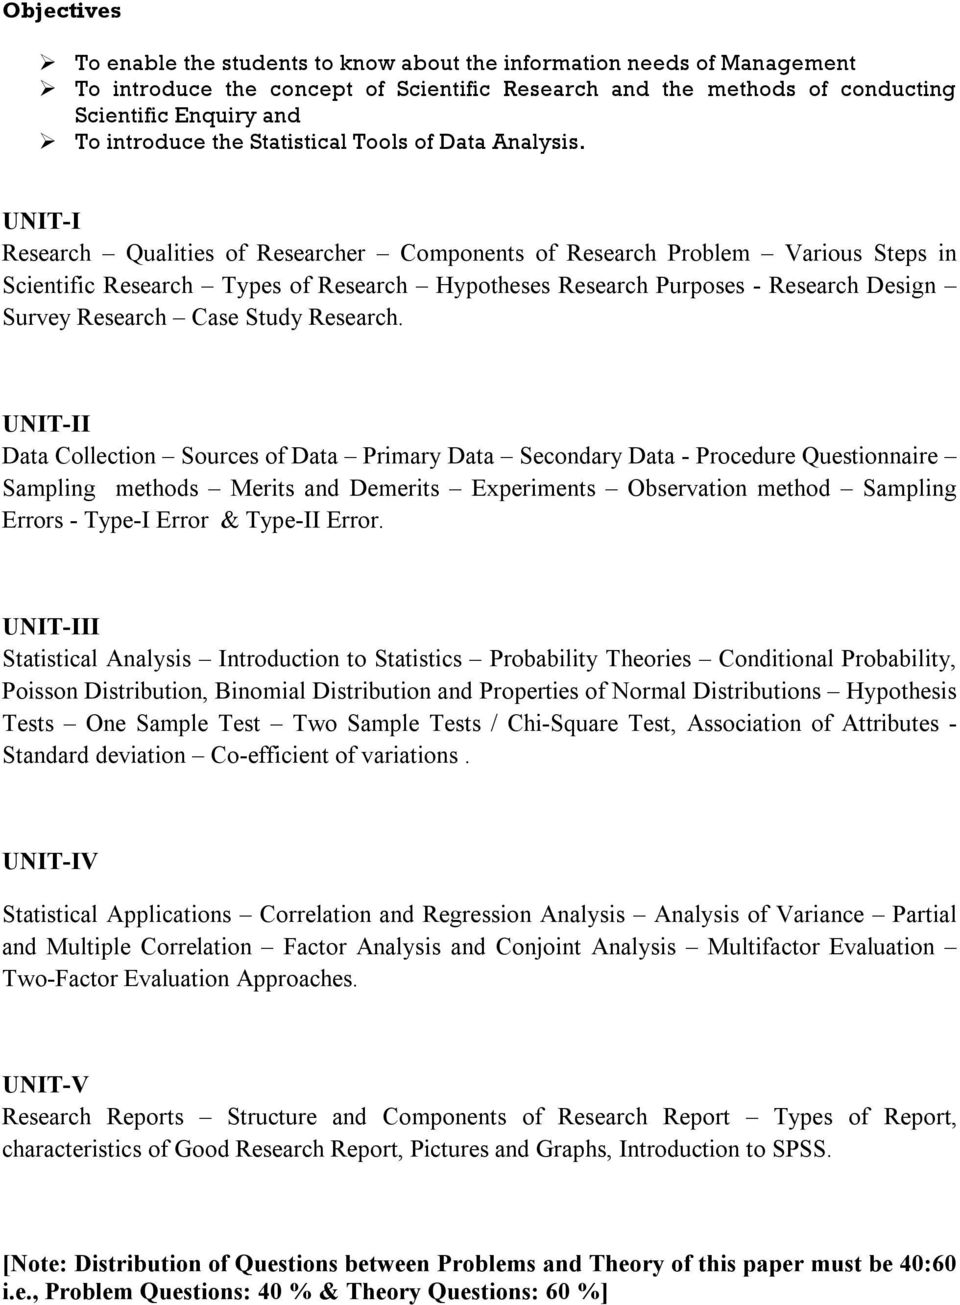 UNIT-I Research Qualities of Researcher Components of Research Problem Various Steps in Scientific Research Types of Research Hypotheses Research Purposes - Research Design Survey Research Case Study